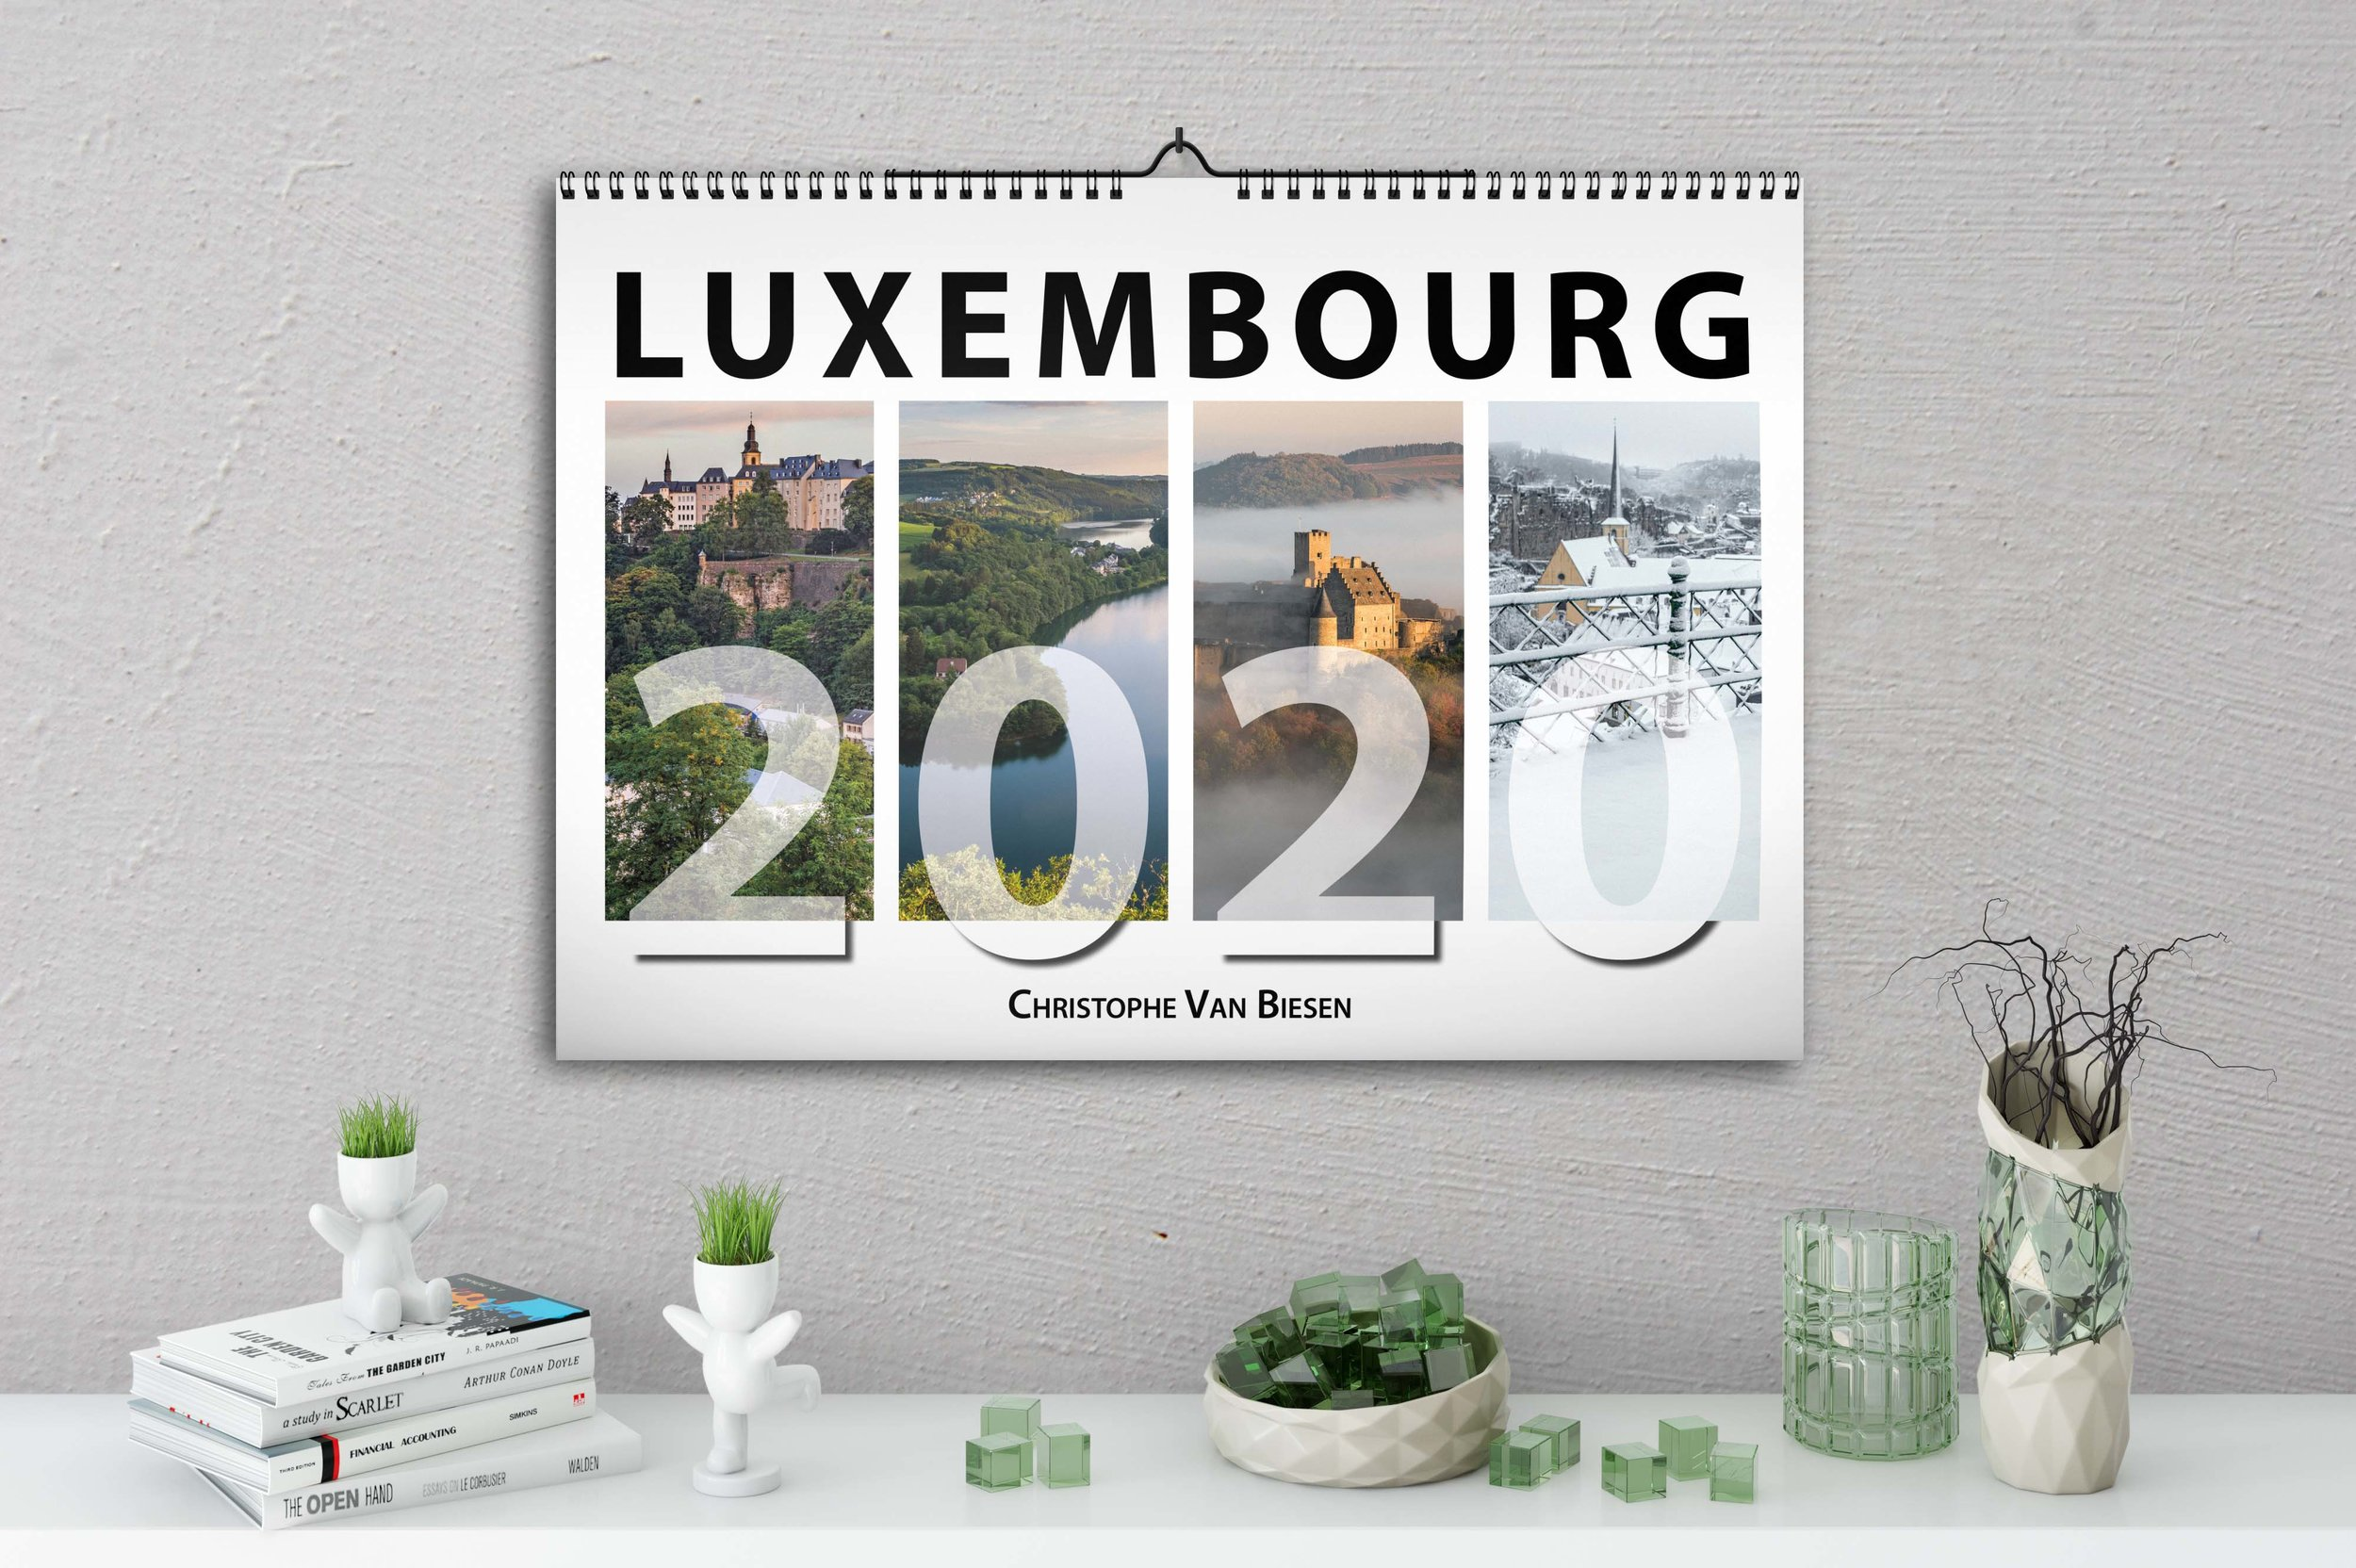 Luxembourg Calendar 2020 - Annual Calendar - Wall Calendar - Photography by Christophe Van Biesen - Luxembourg Landscape and Travel Photographer